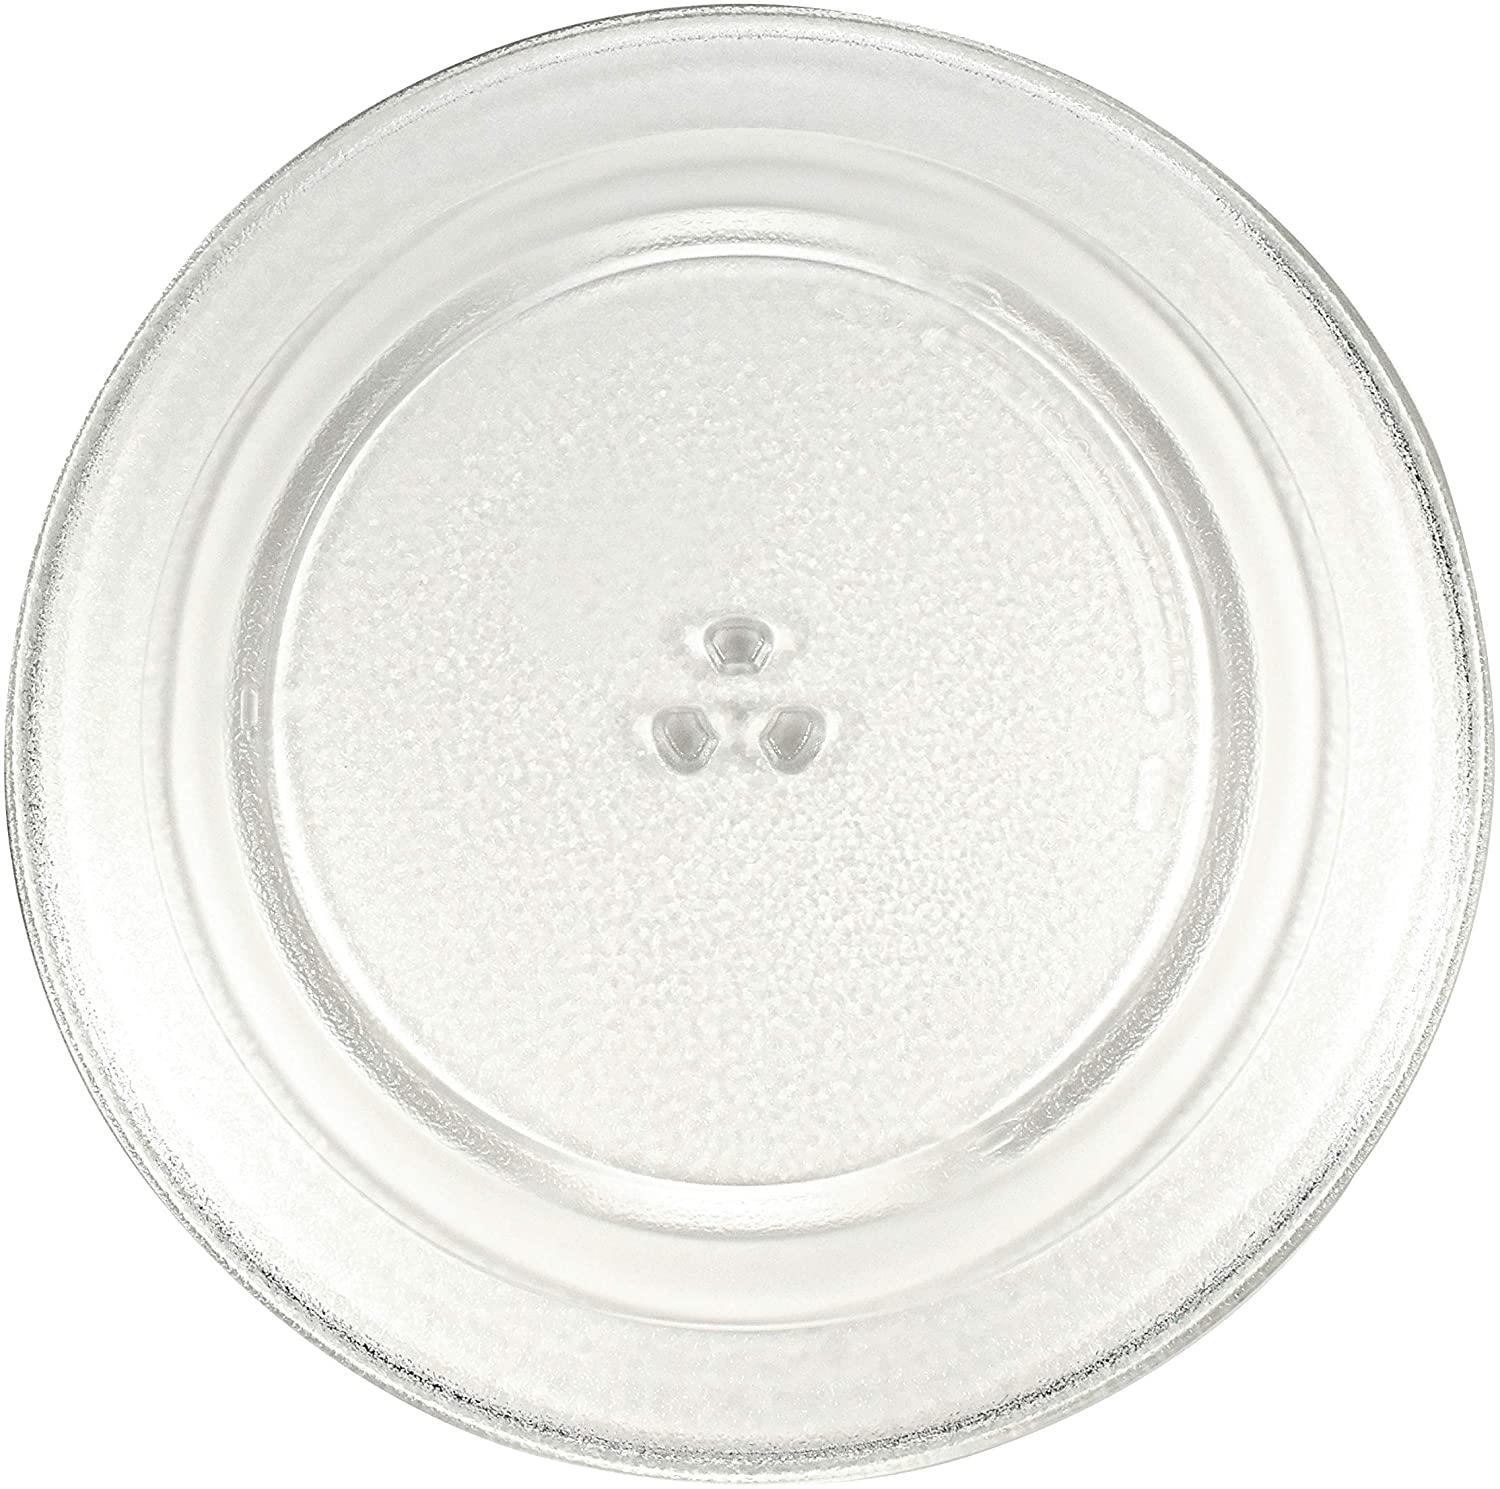 hqrp 15 glass turntable tray compatible with sharp carousel 9kc3517207700 r551 r 551z r 551zs r 551zm r559 r 559y r 559yk r 559yw smc1840cs smc1842cs